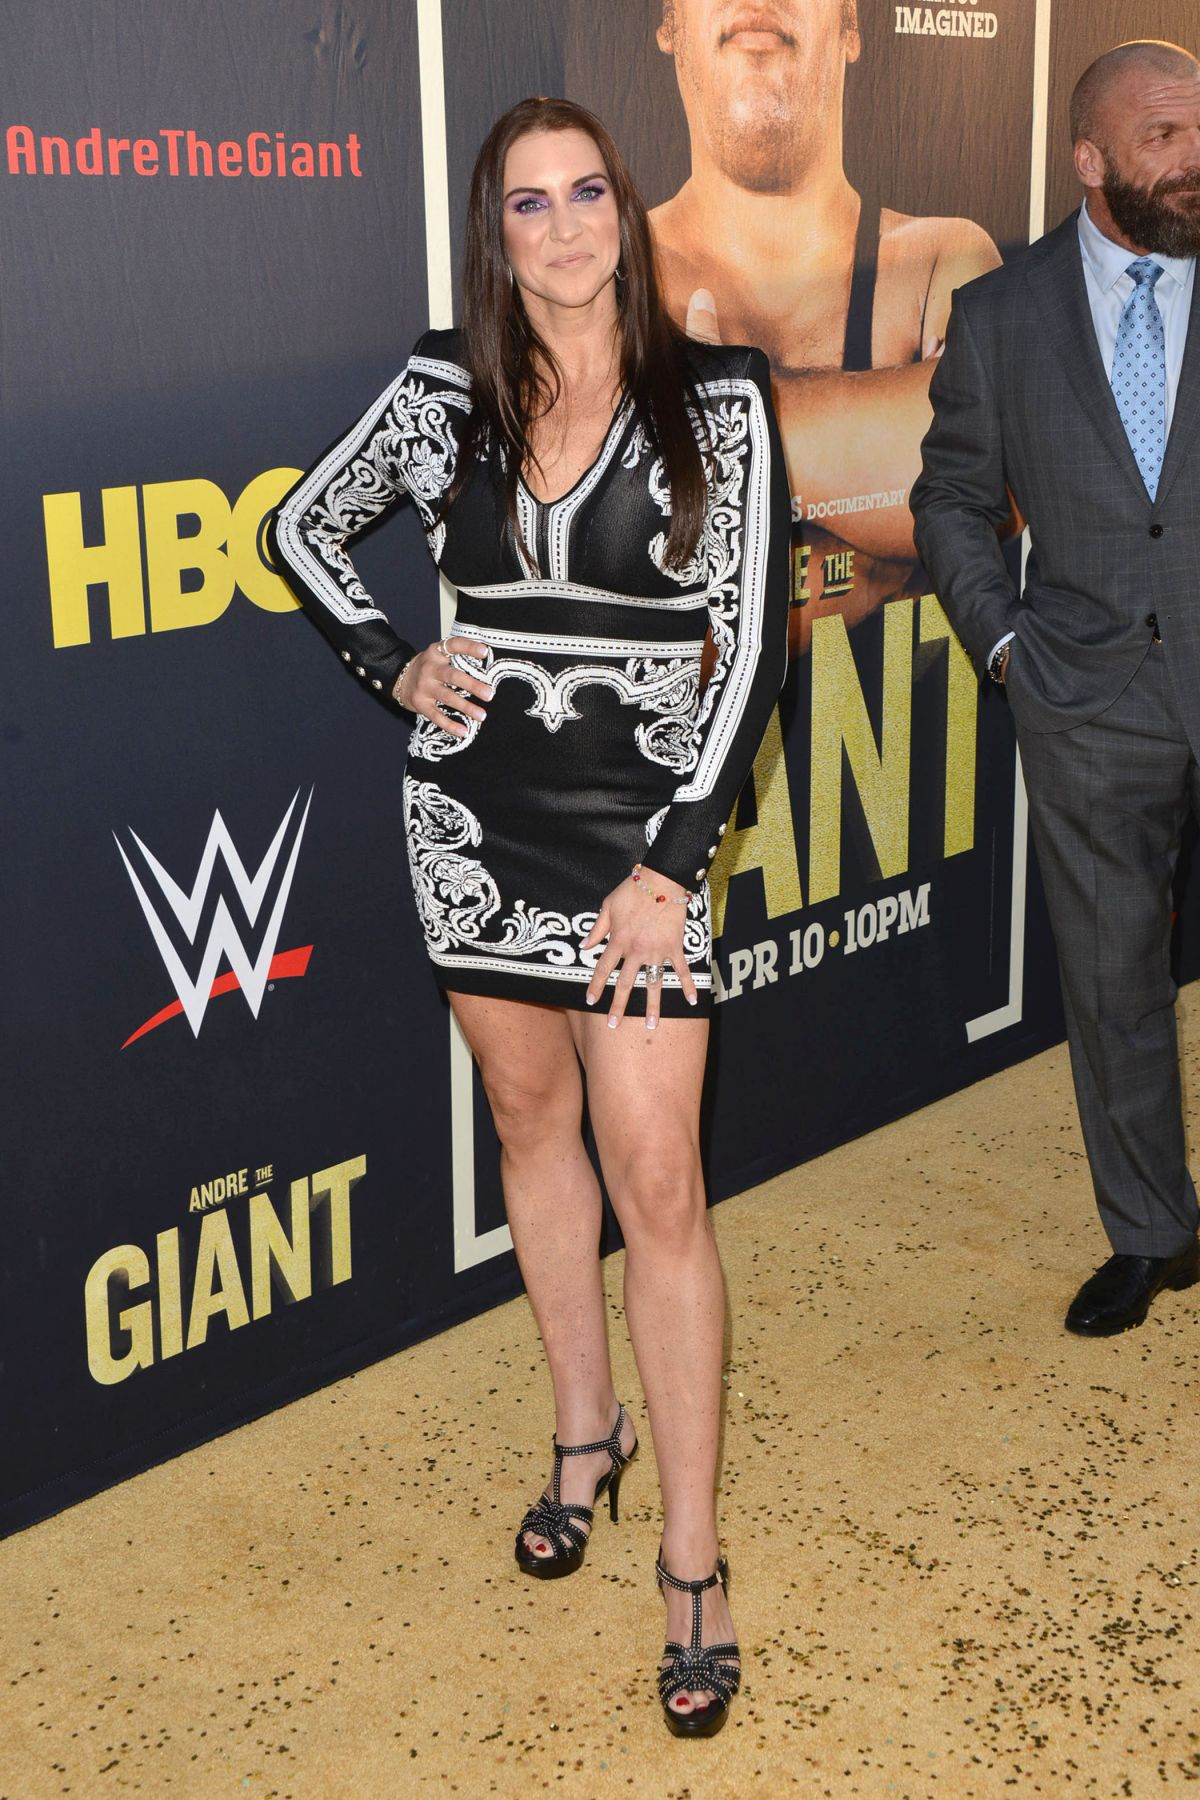 Stephanie Mcmahon At Andre The Giant Premiere In Hollywood Celebzz